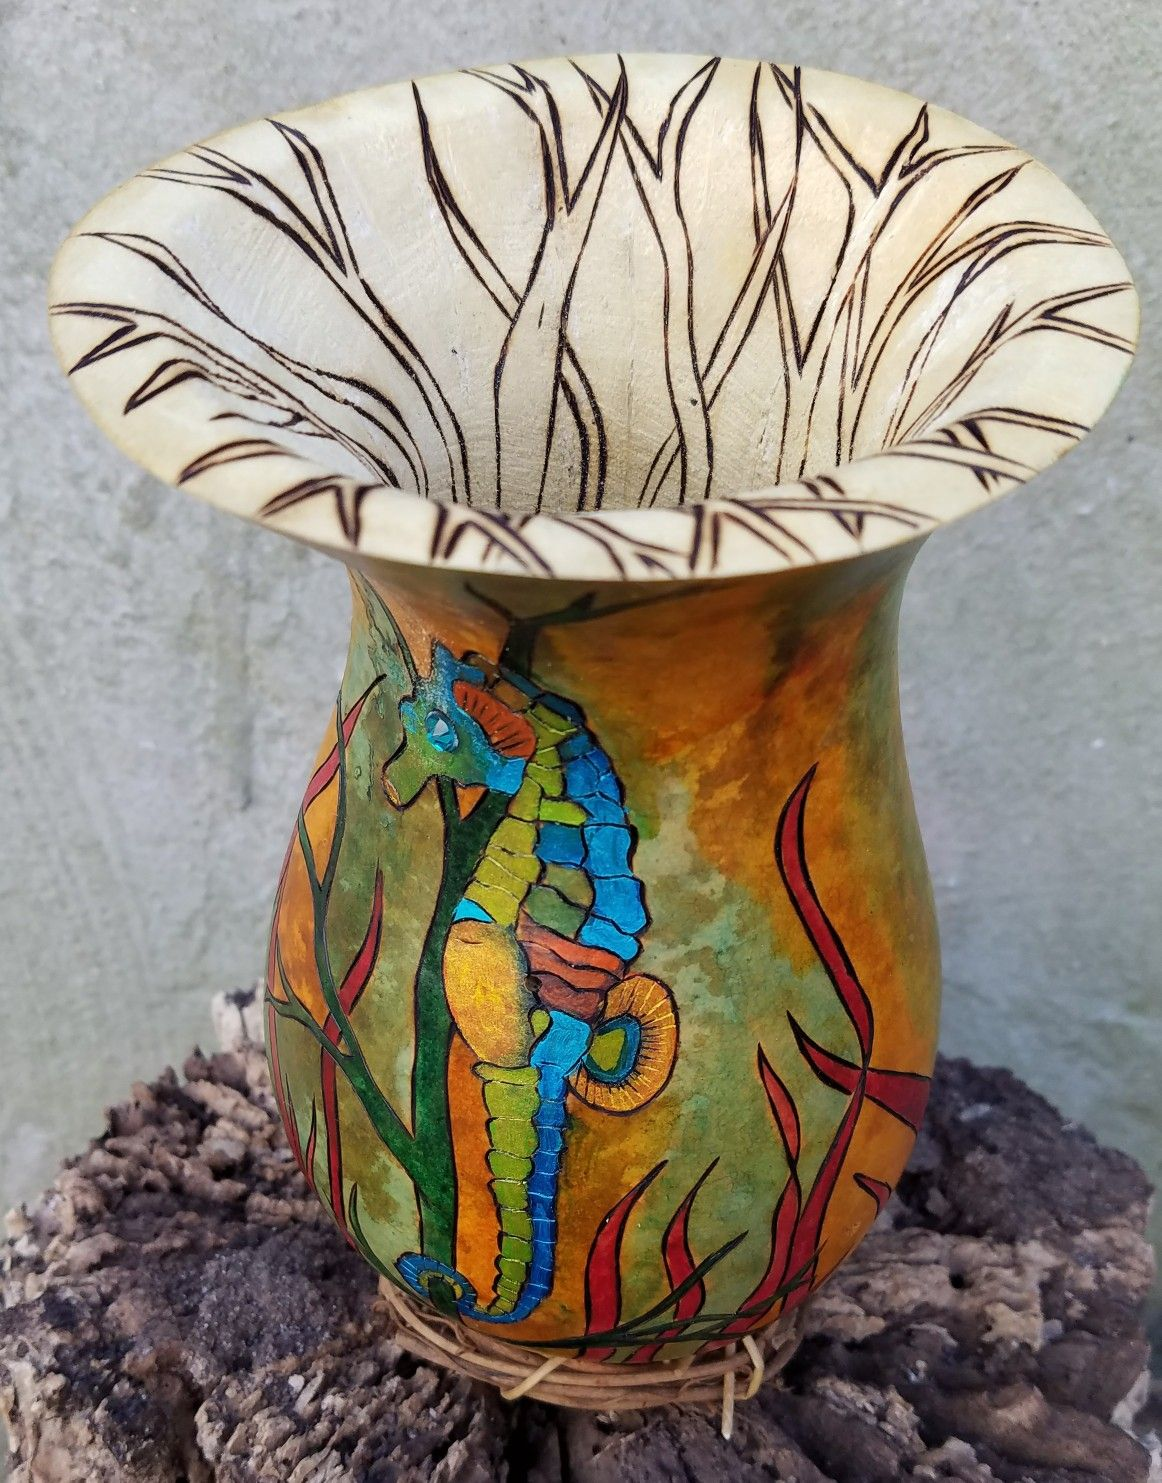 Pin by Susan Sweder on Everythingsweder gourds Gourd art